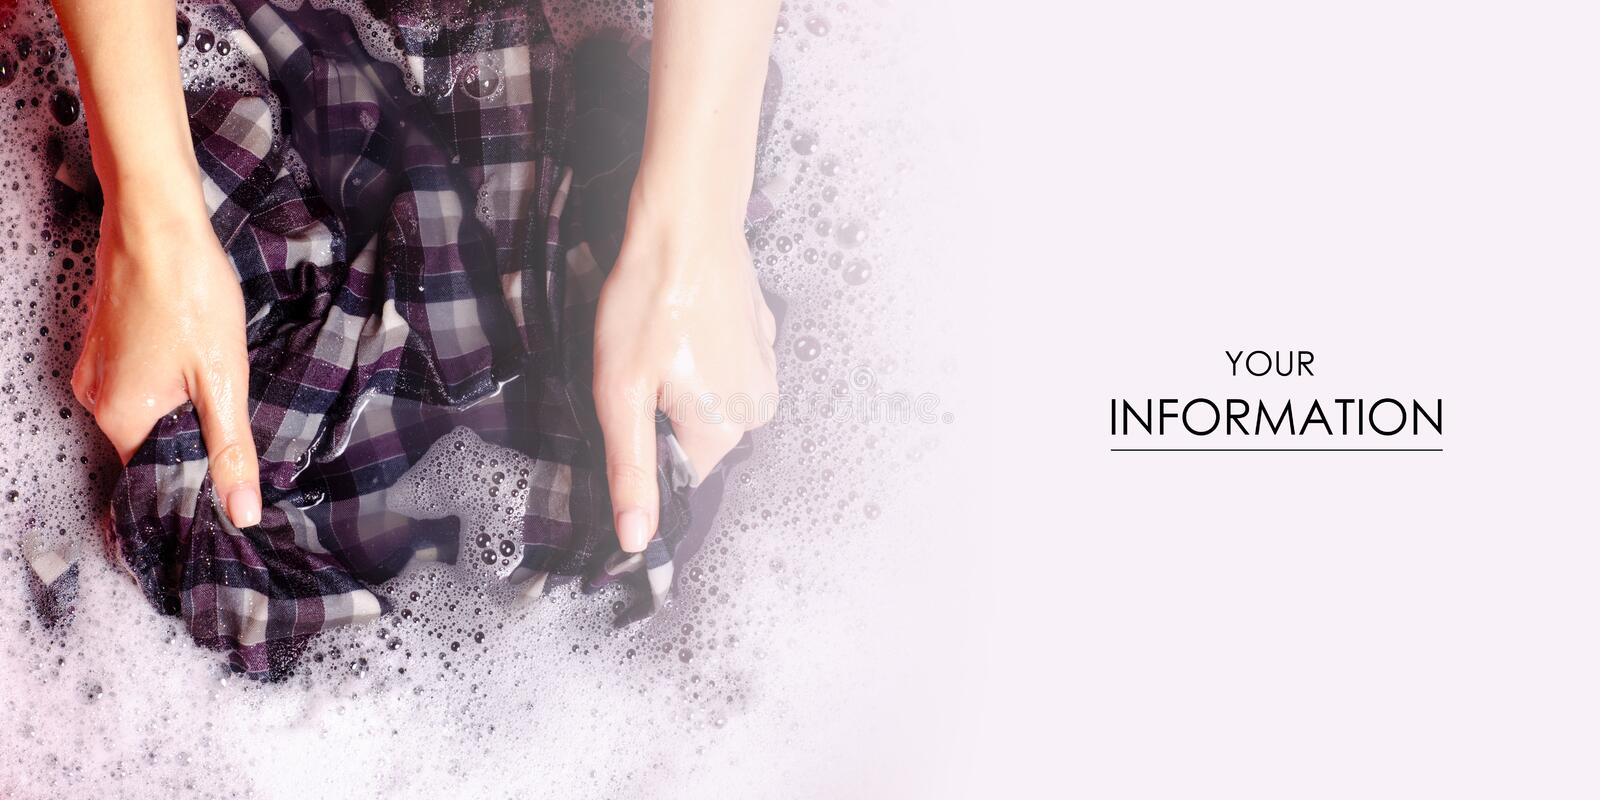 Women washing color clothes shirt in basin enemale powdered detergent pattern. Top view stock photo